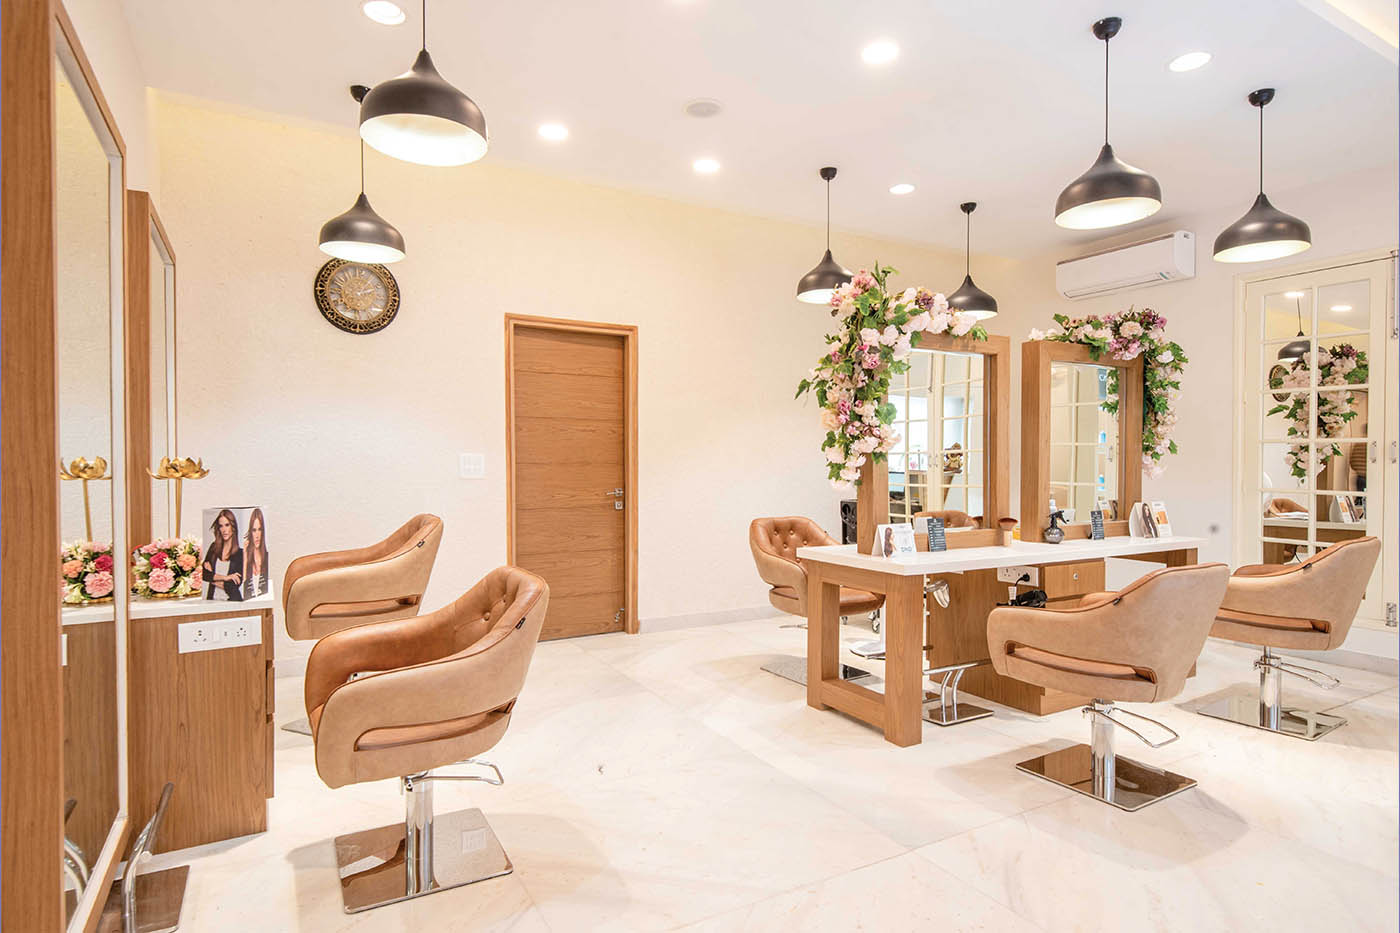 Vandna's Salon – Grooming and Pampering at its Best!